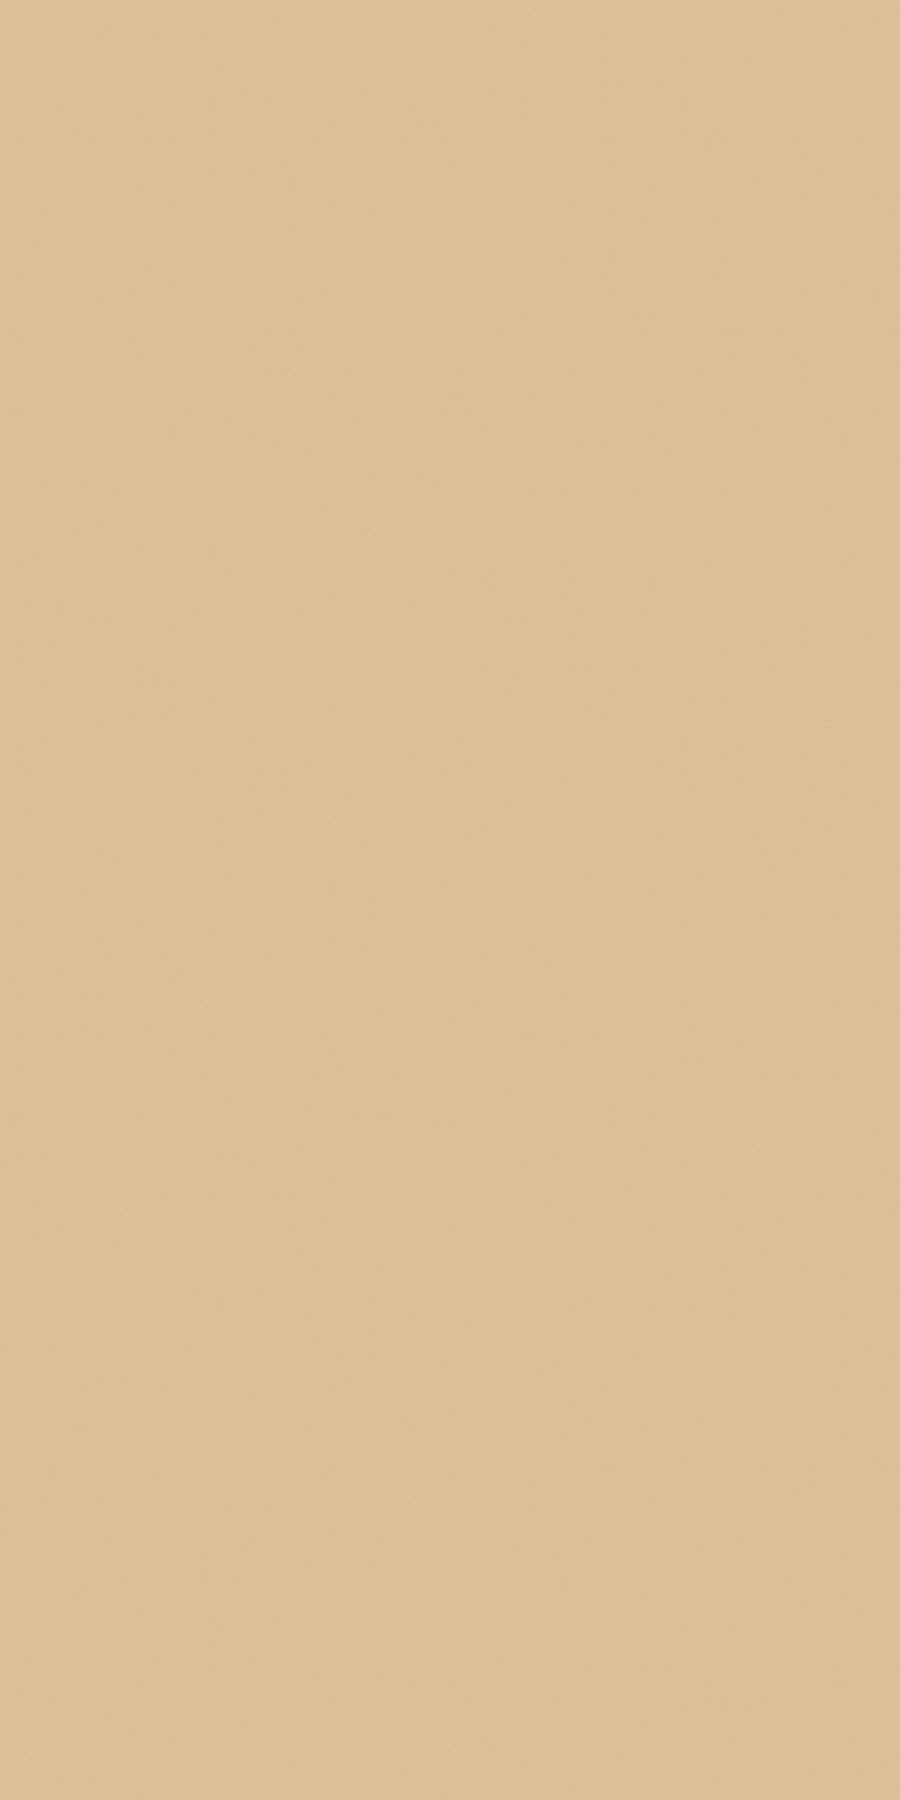 Beige Colored Sand For Sand Art. Free Shipping. Order Now